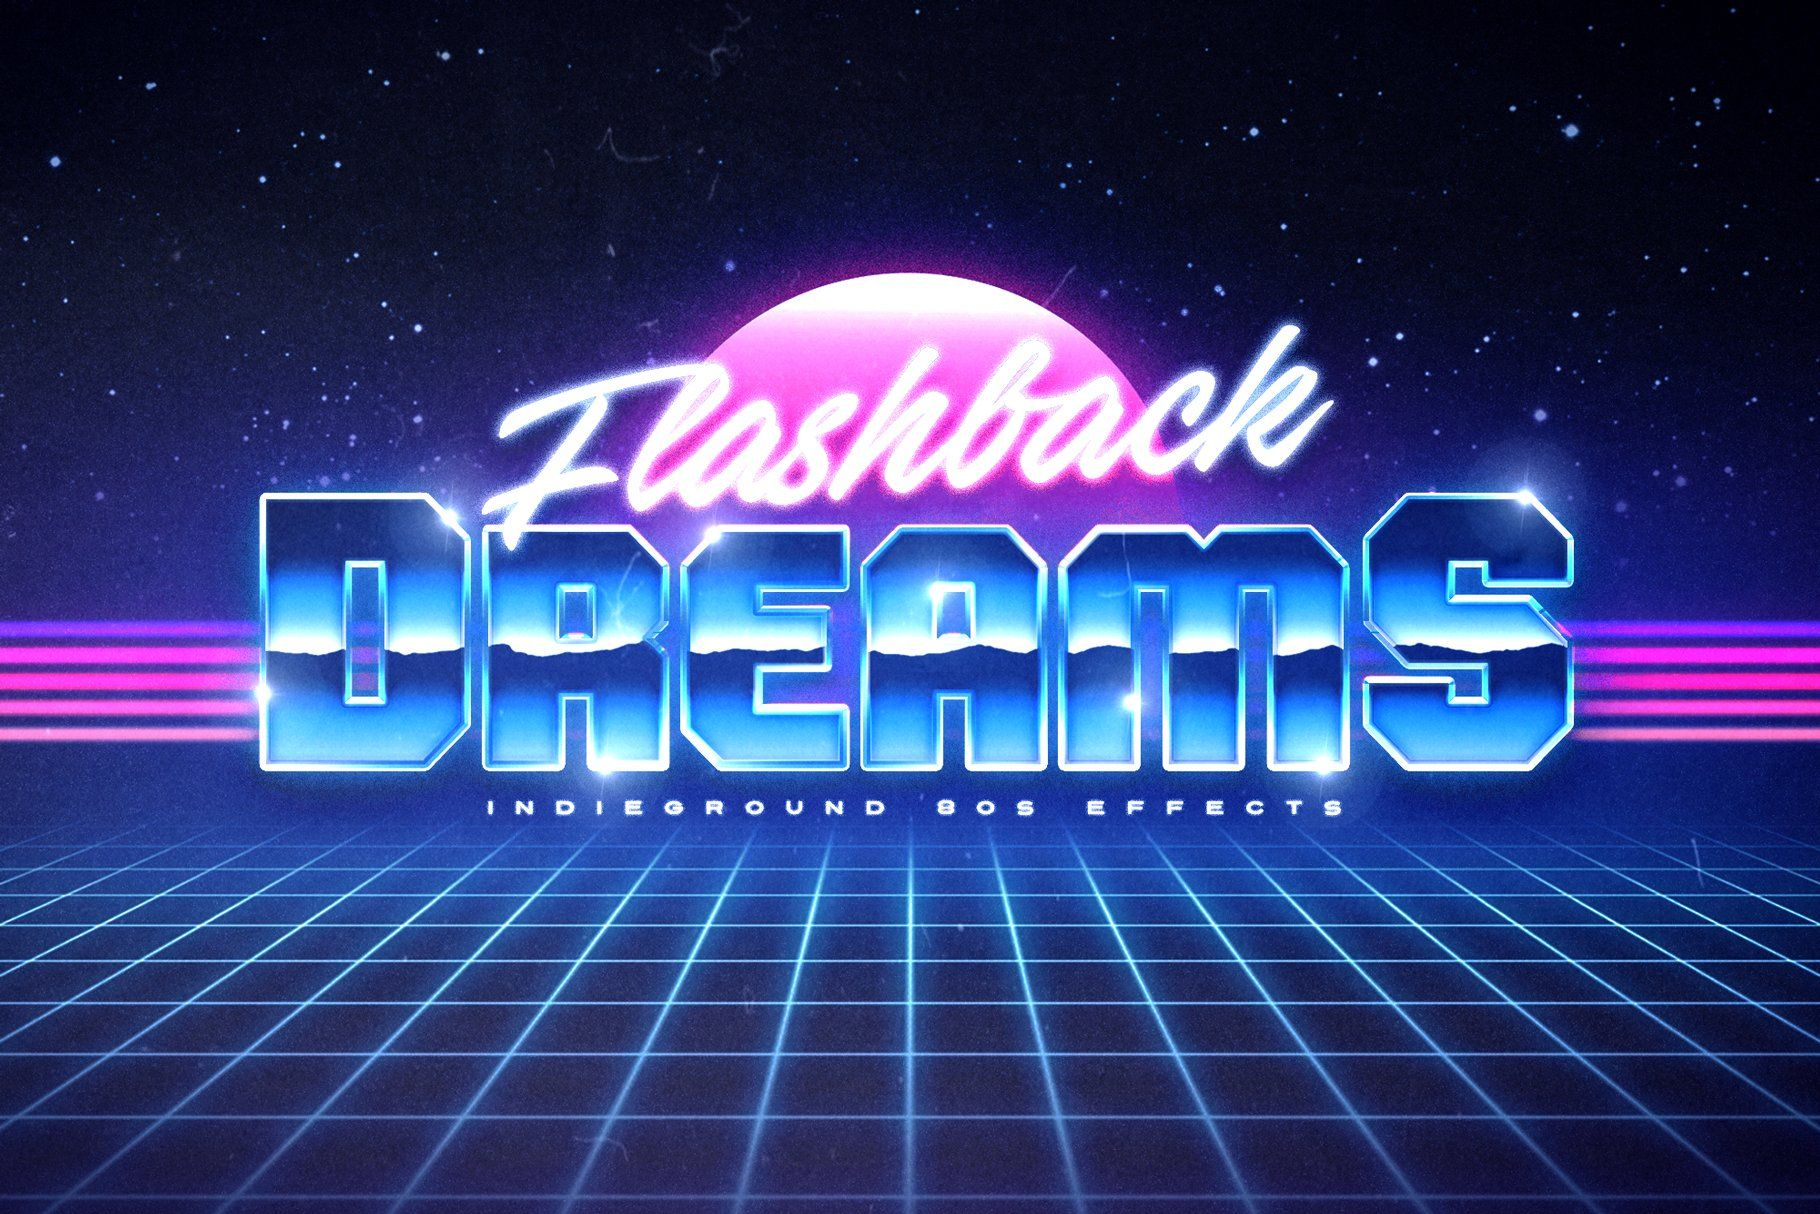 80s Text Effects Vol.1 , ad, objectsmartfavorite